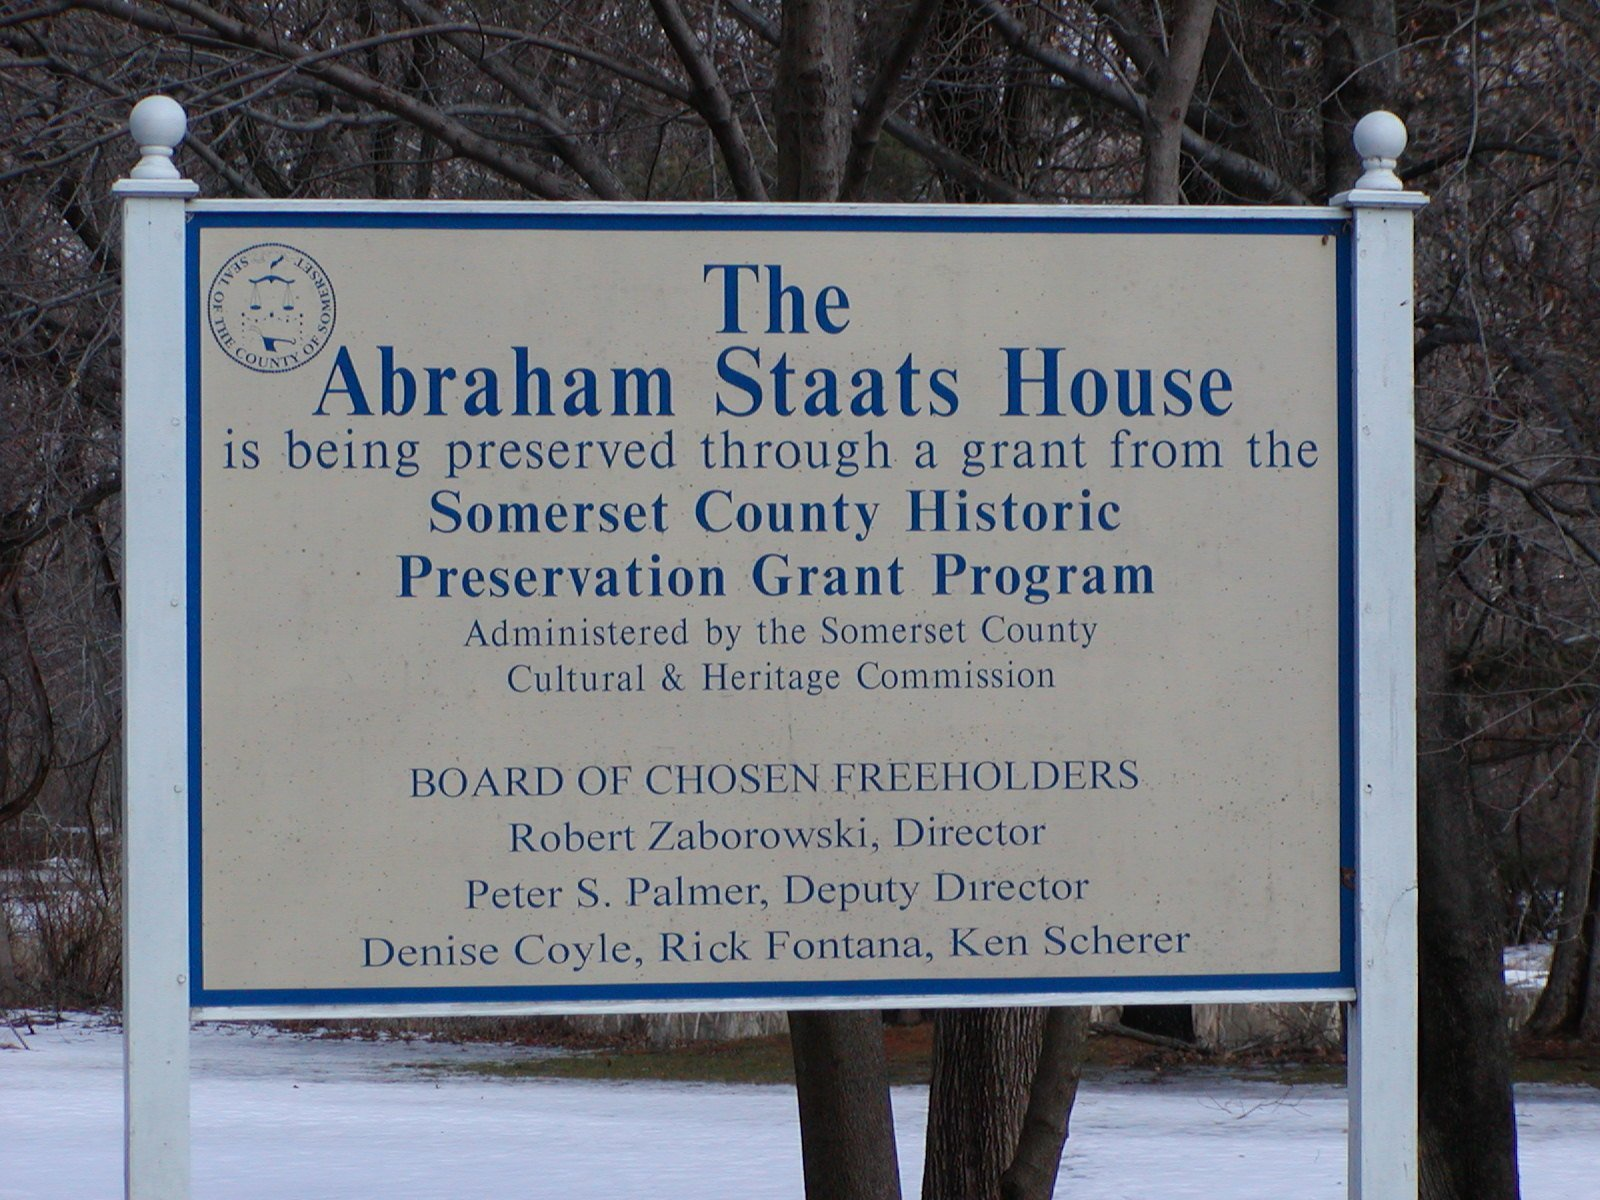 The Abraham Staats House.